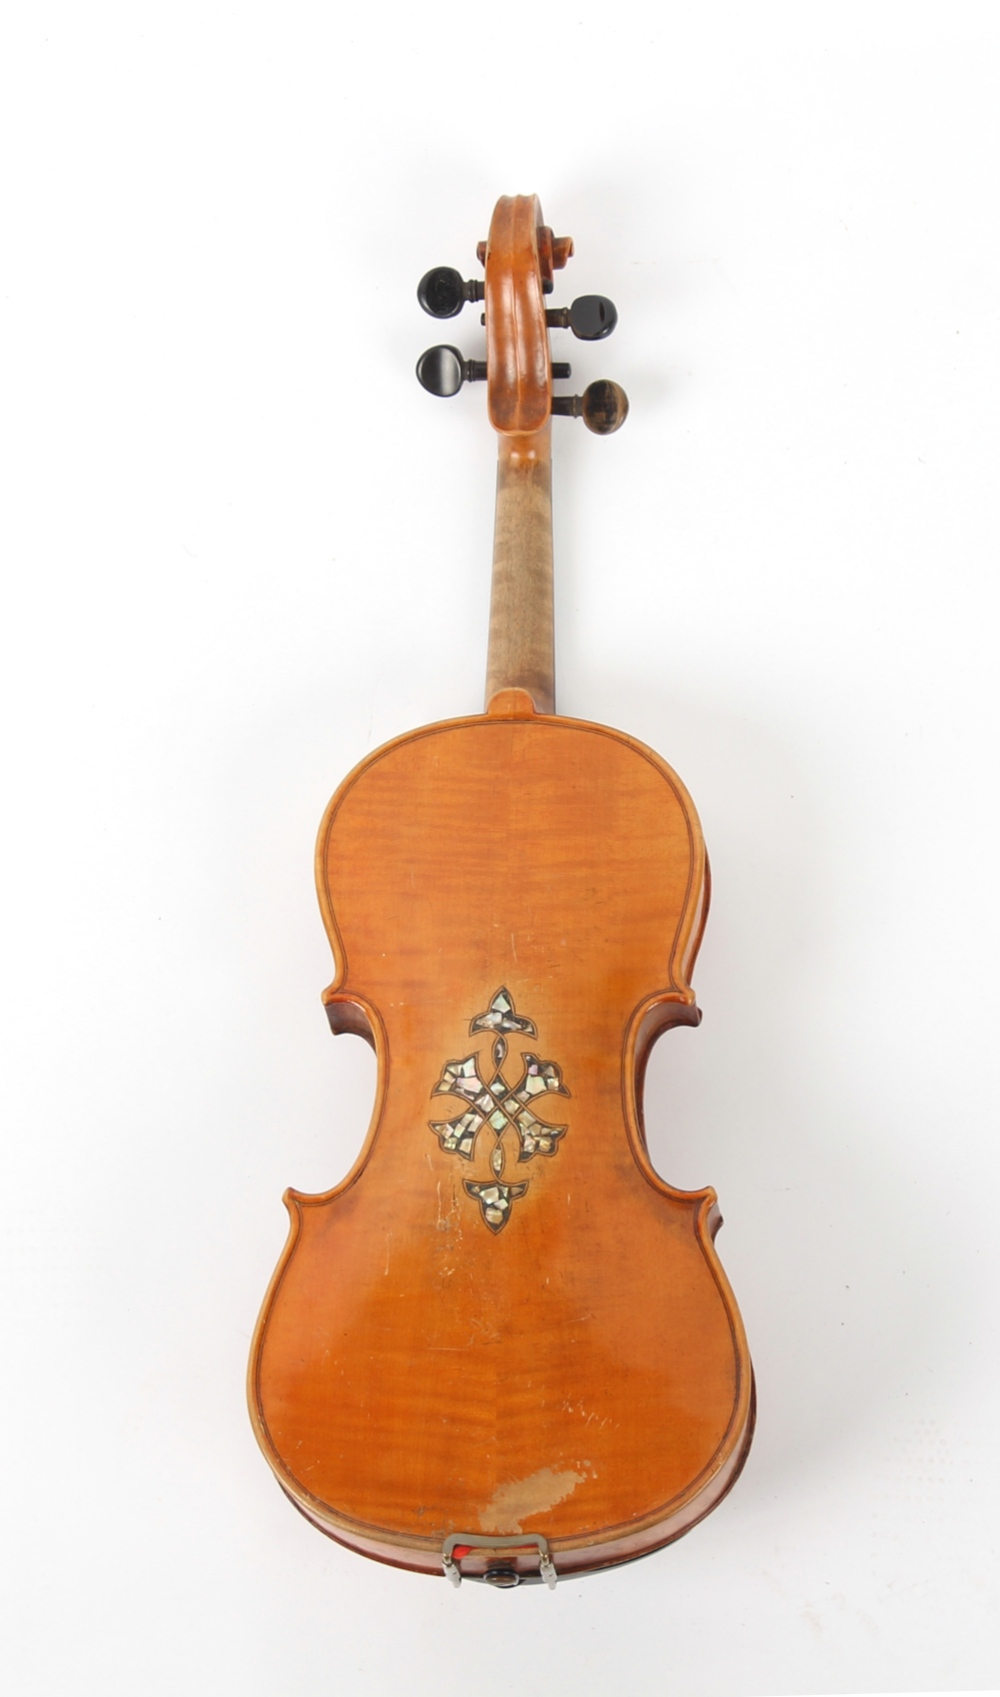 Property of a gentleman - a German violin, the back with inlaid mother-of-pearl decoration. - Image 2 of 2